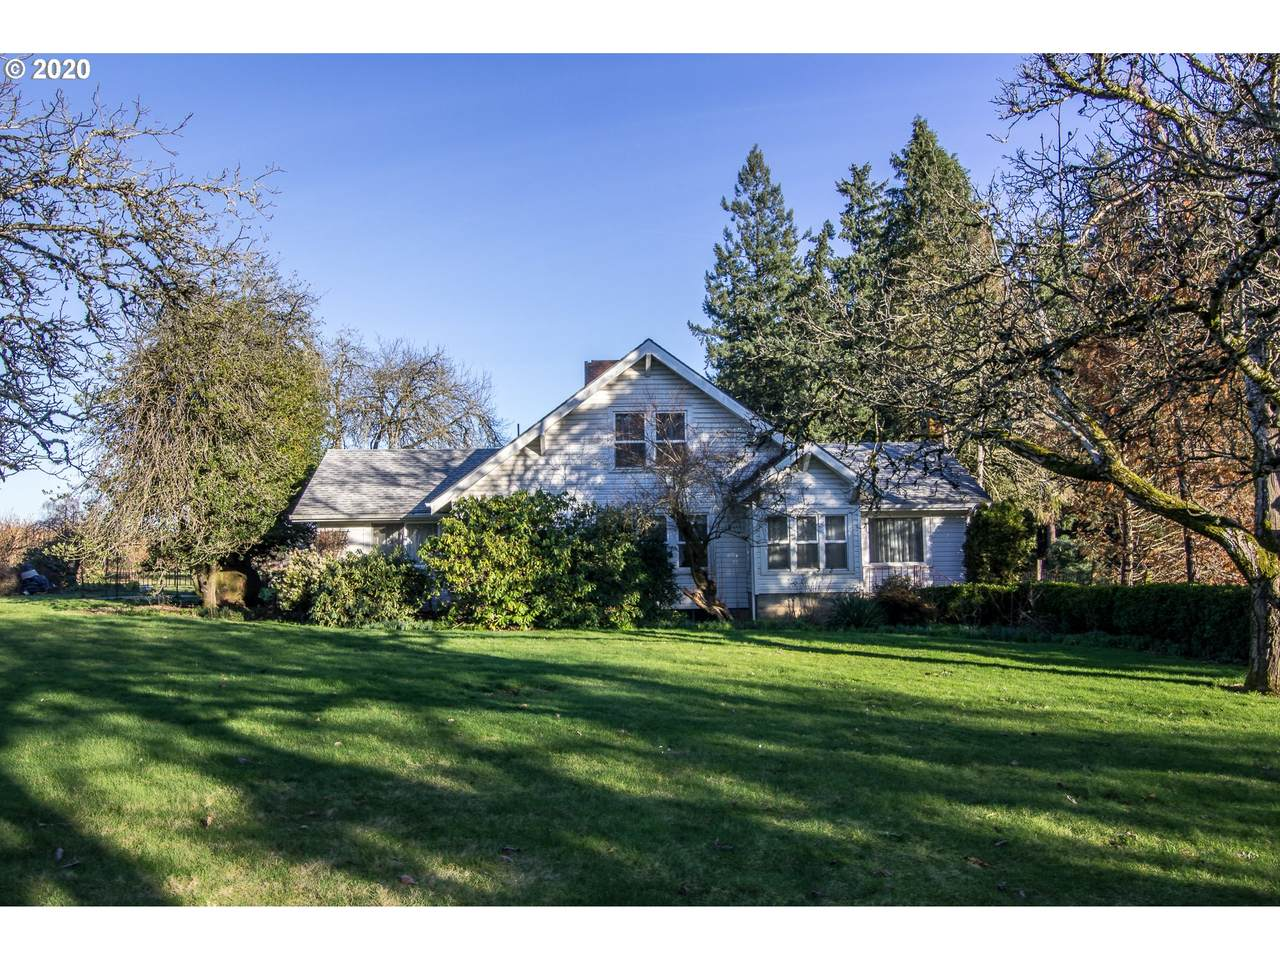 6700 Straughan Rd - Photo 1